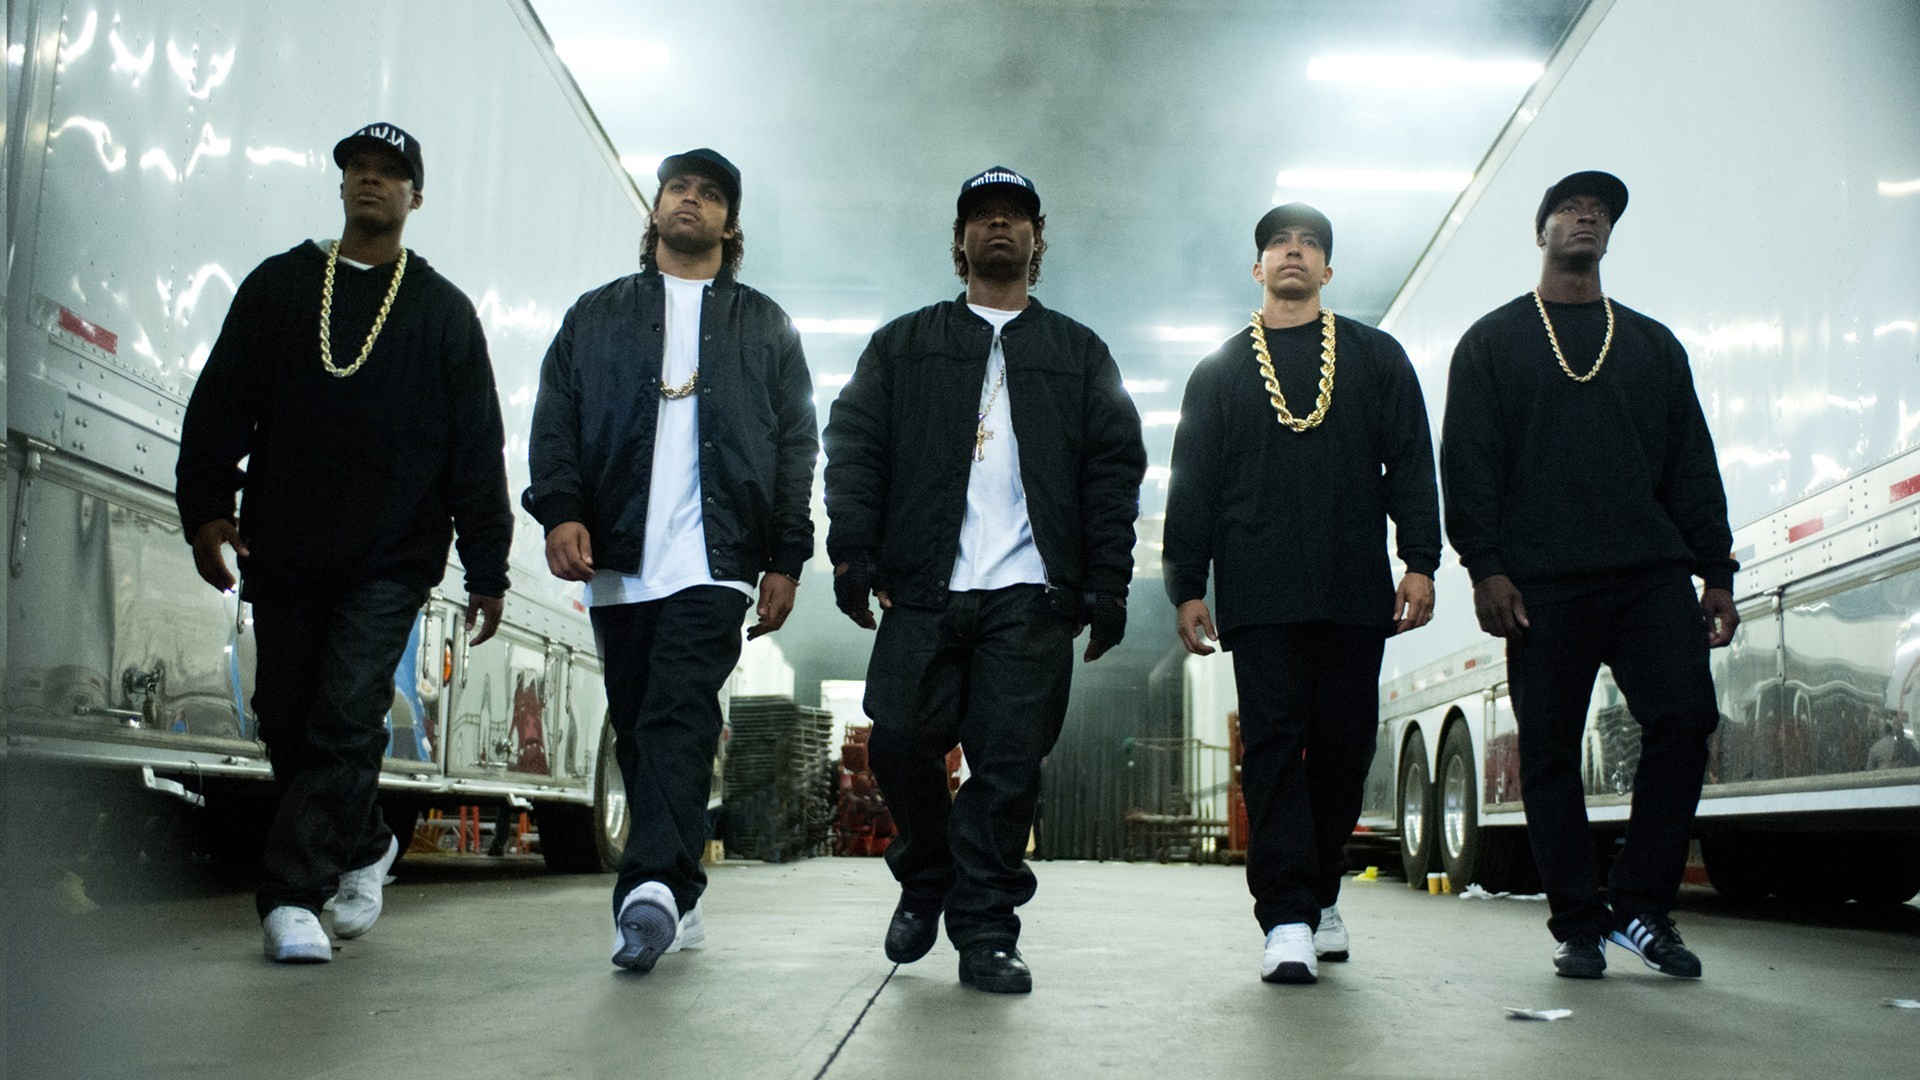 Straight Outta Compton plays it safe by sticking to